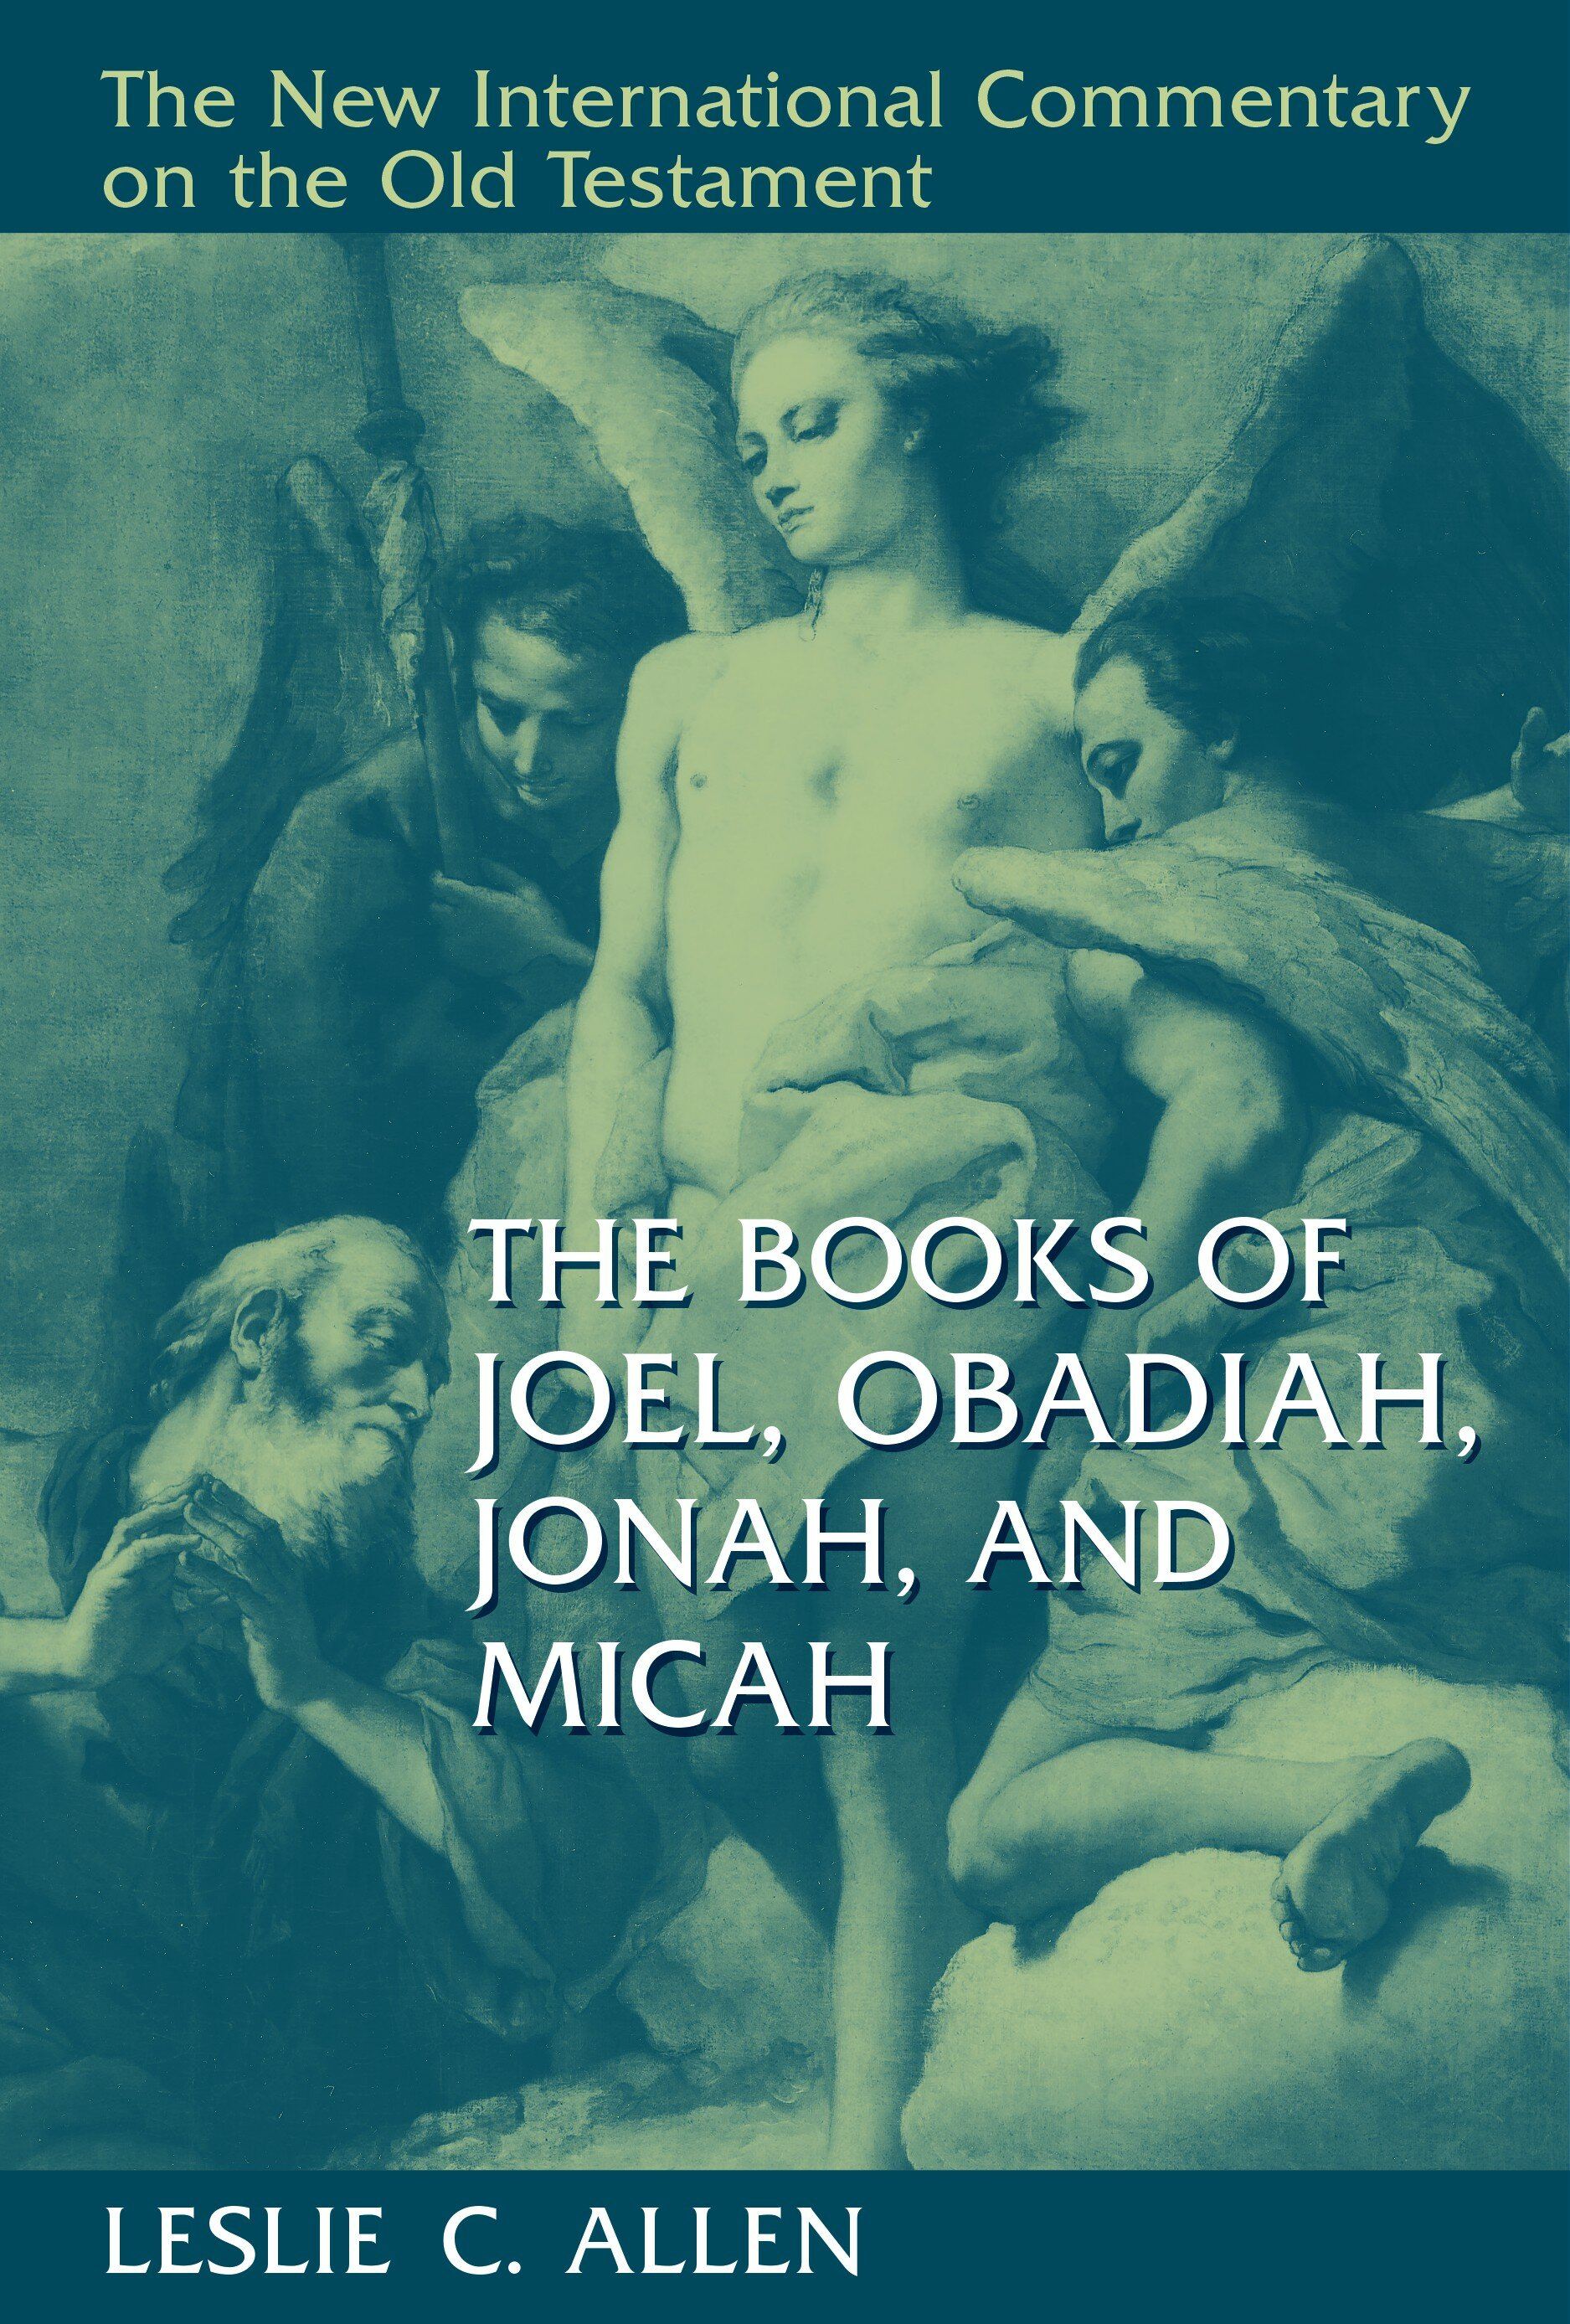 The Books of Joel, Obadiah, Jonah, and Micah (The New International Commentary on the Old Testament | NICOT)